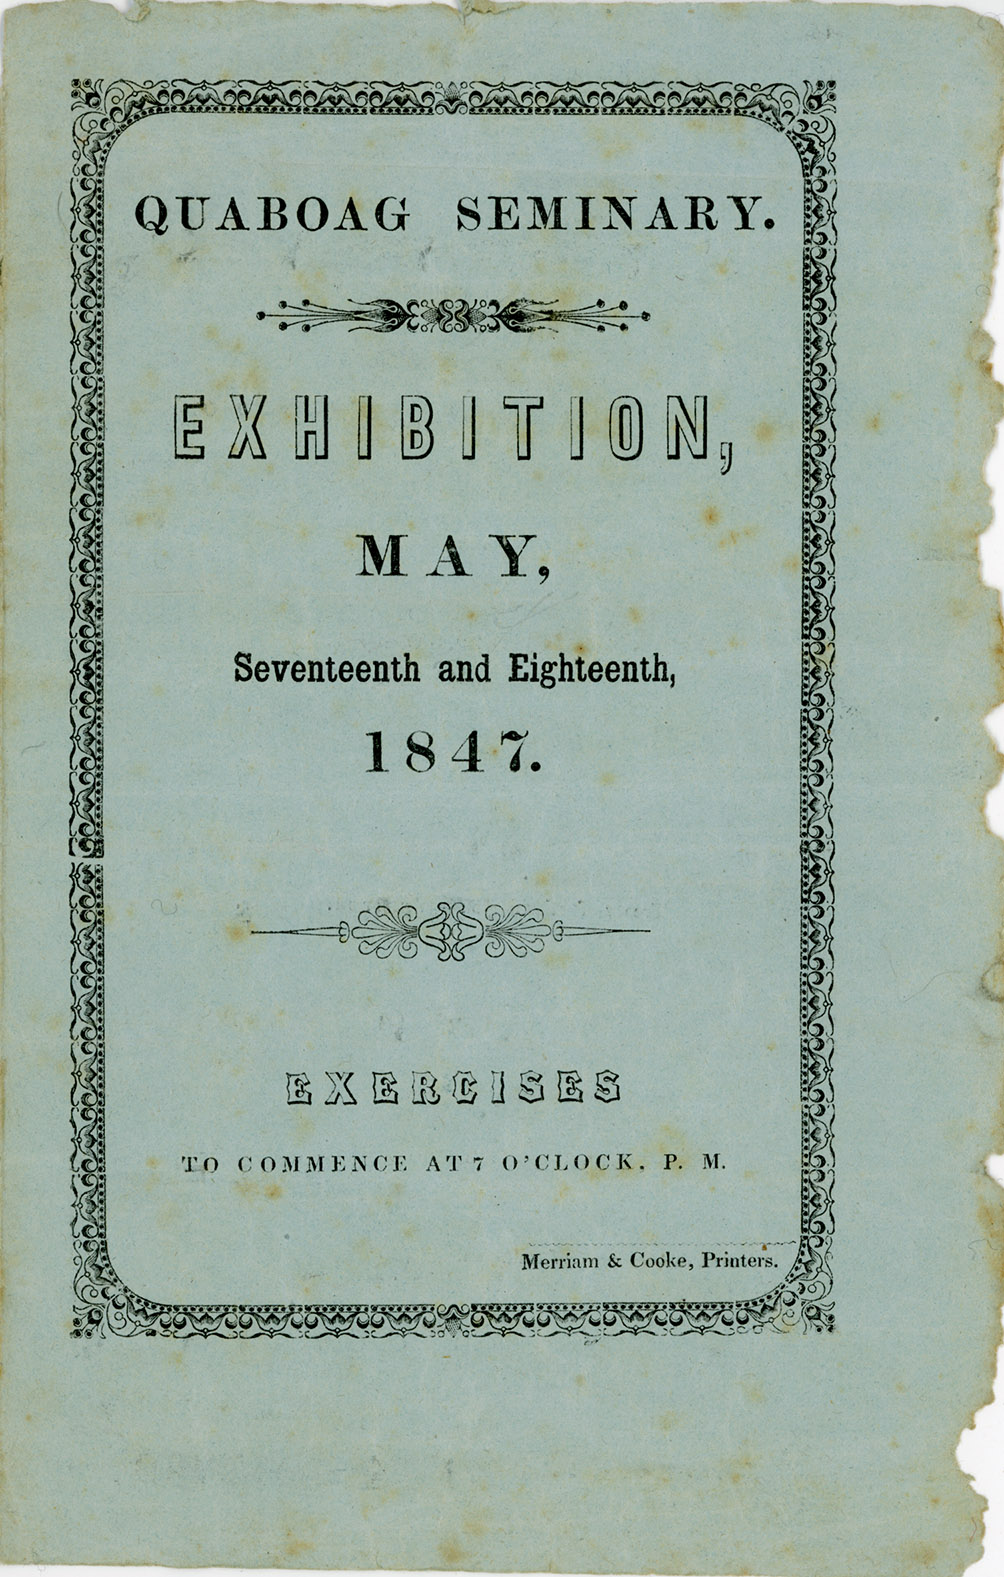 Depiction of Program of the student exhibition, Quaboag Seminary, 1847